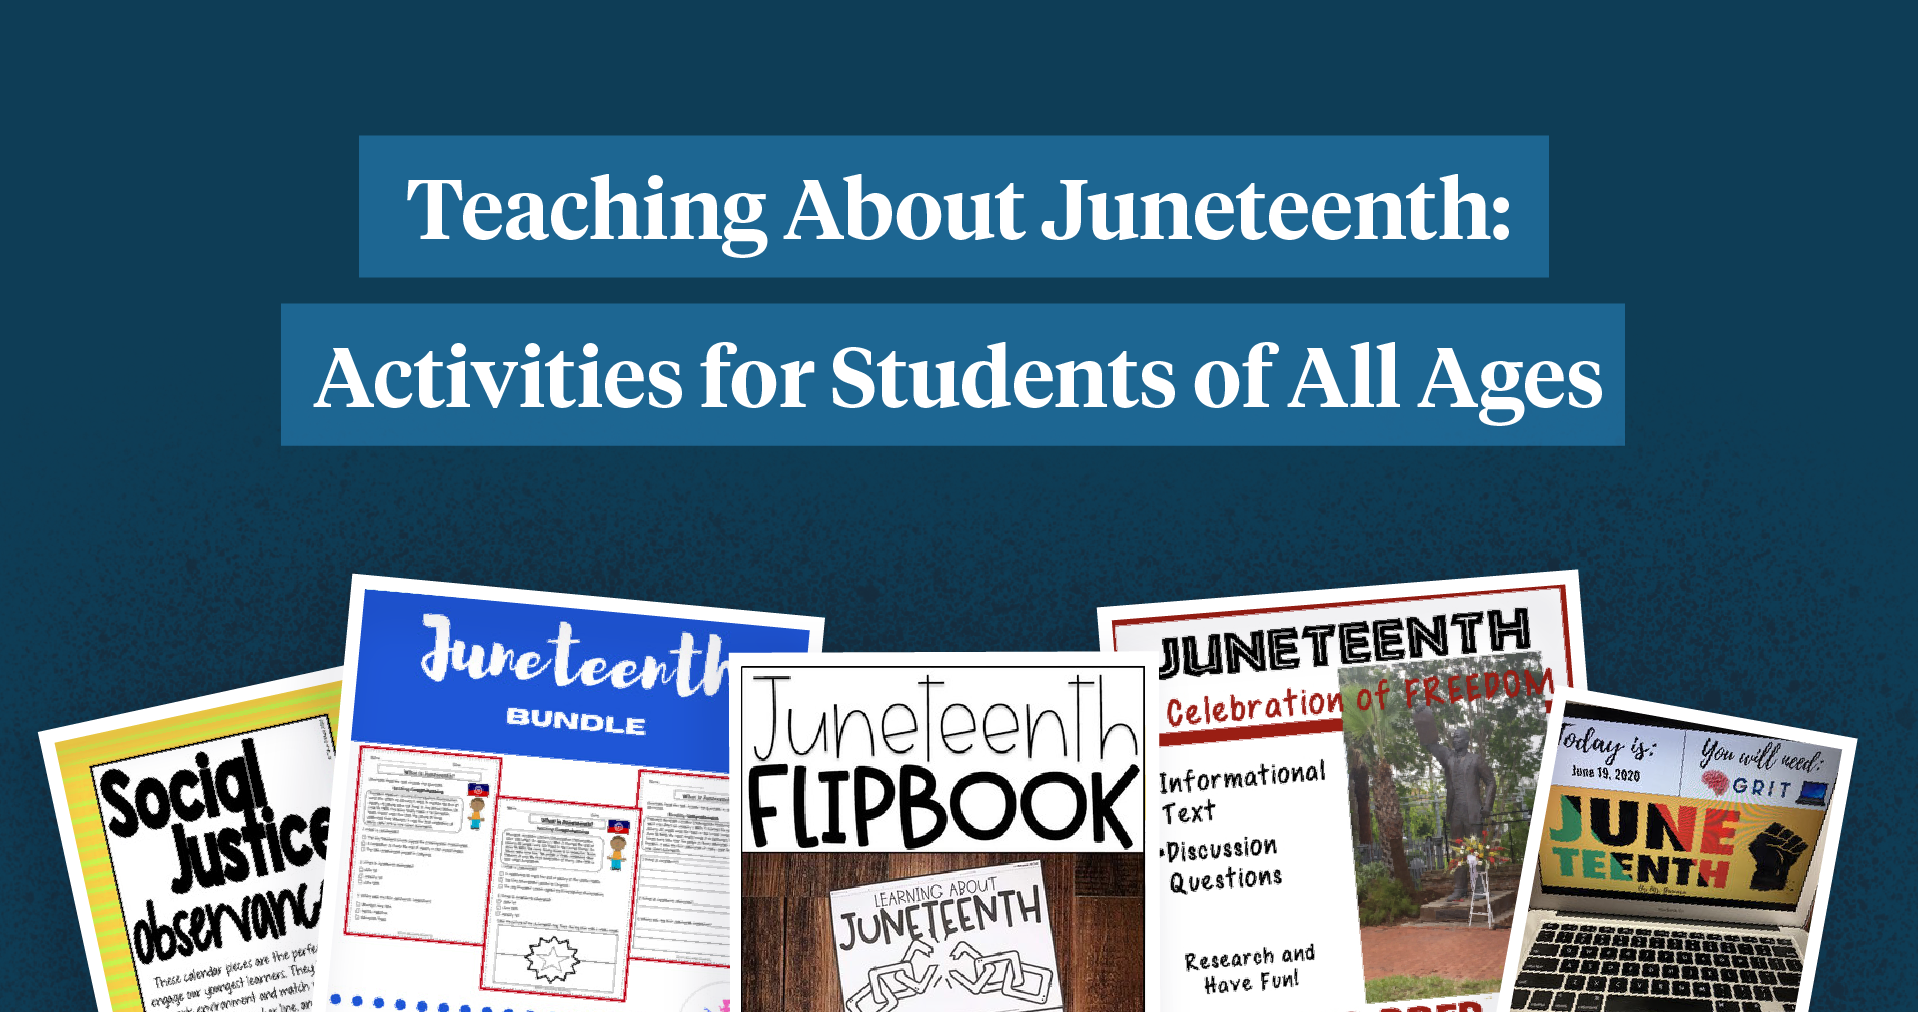 Teaching About Juneteenth: Activities for Students of All Ages